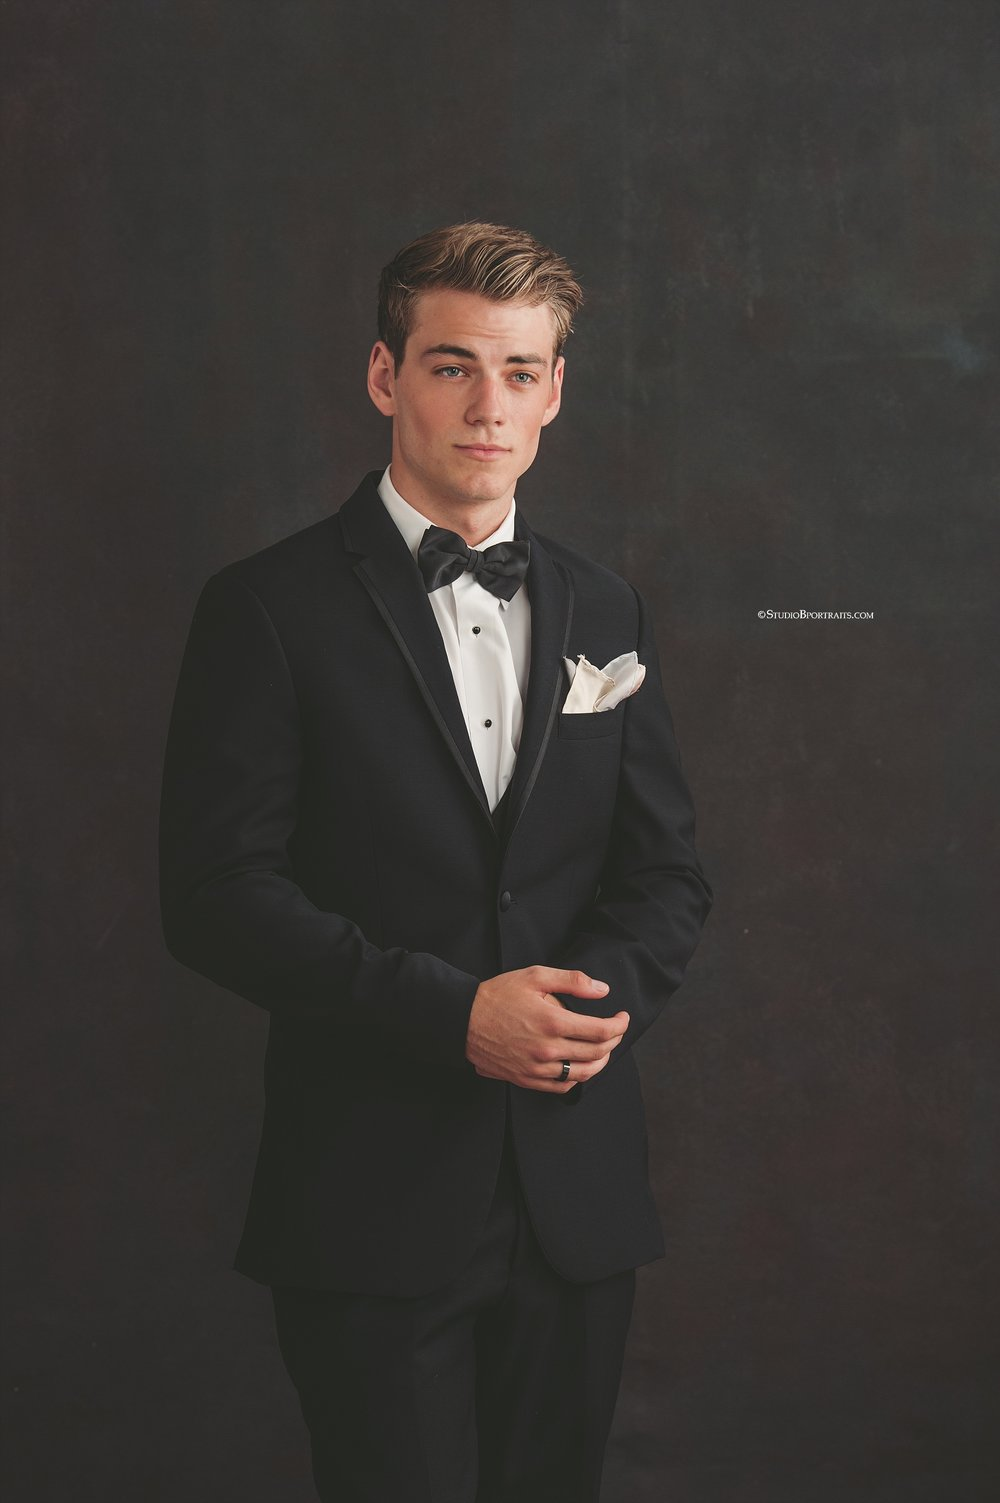 Studio B Portraits_Vanity Fair inspired senior pictures in formal gown and tux_0093.jpg